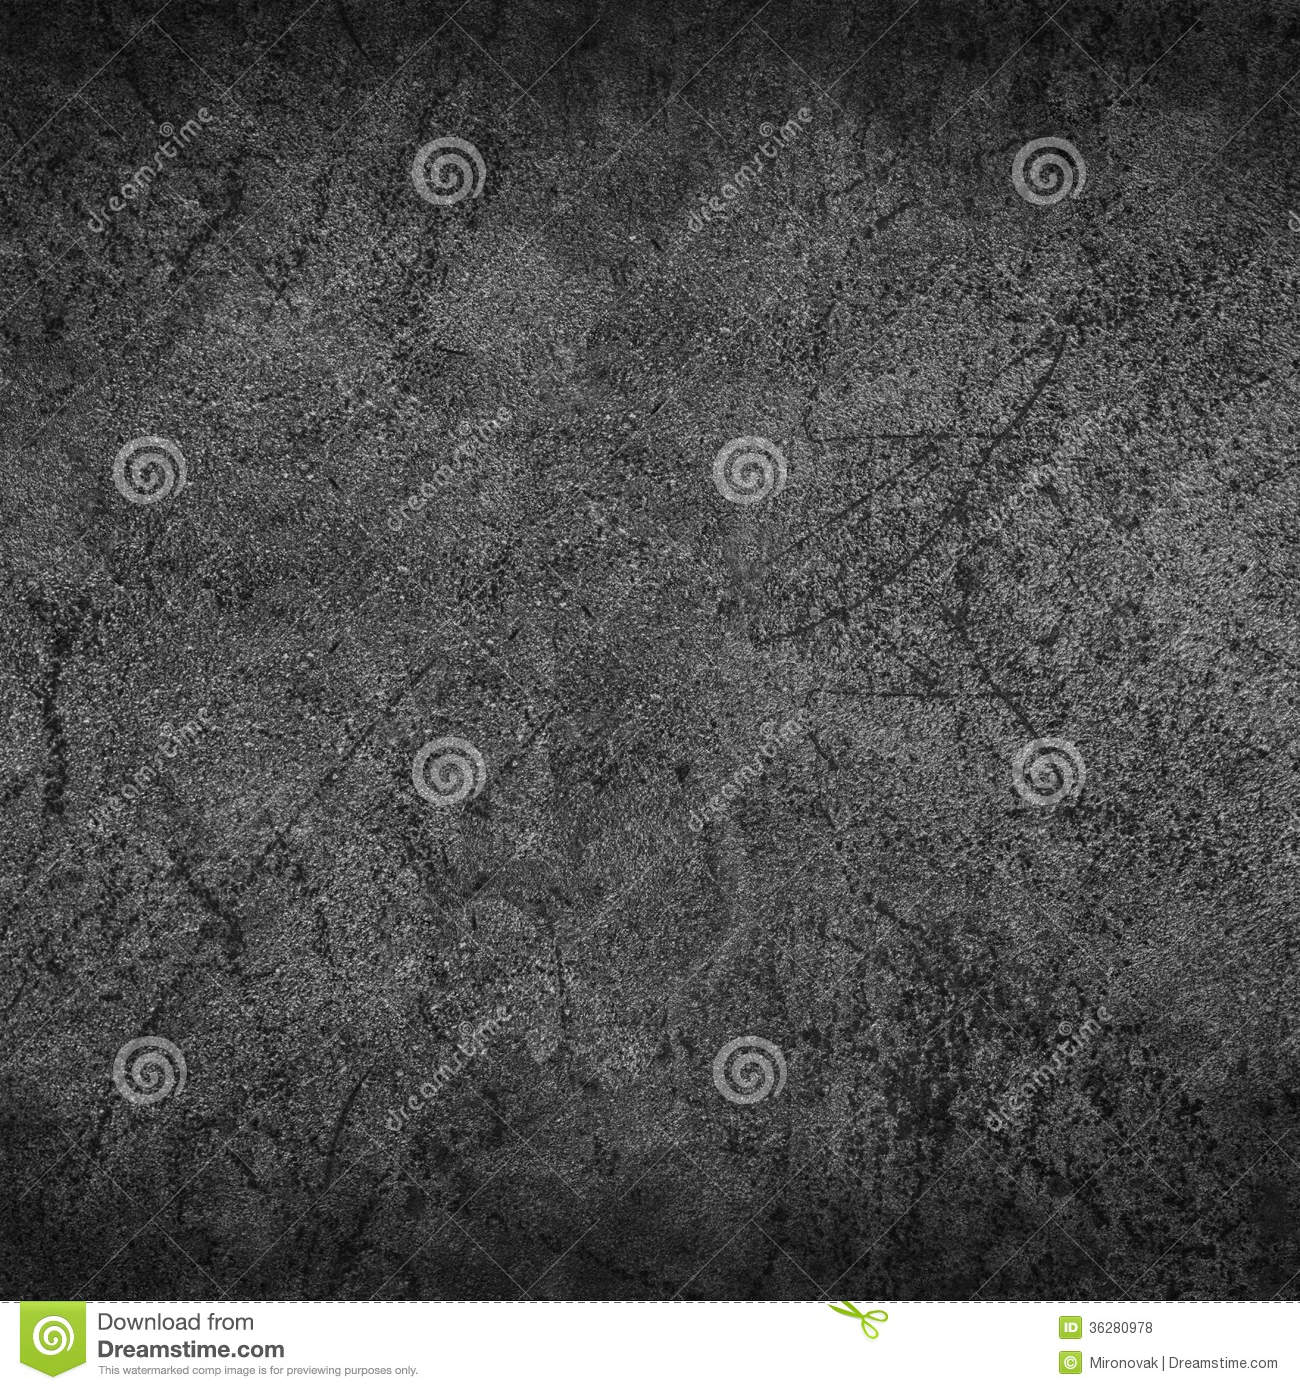 Rusted Metal Plates Texture Black And White Old Ru...